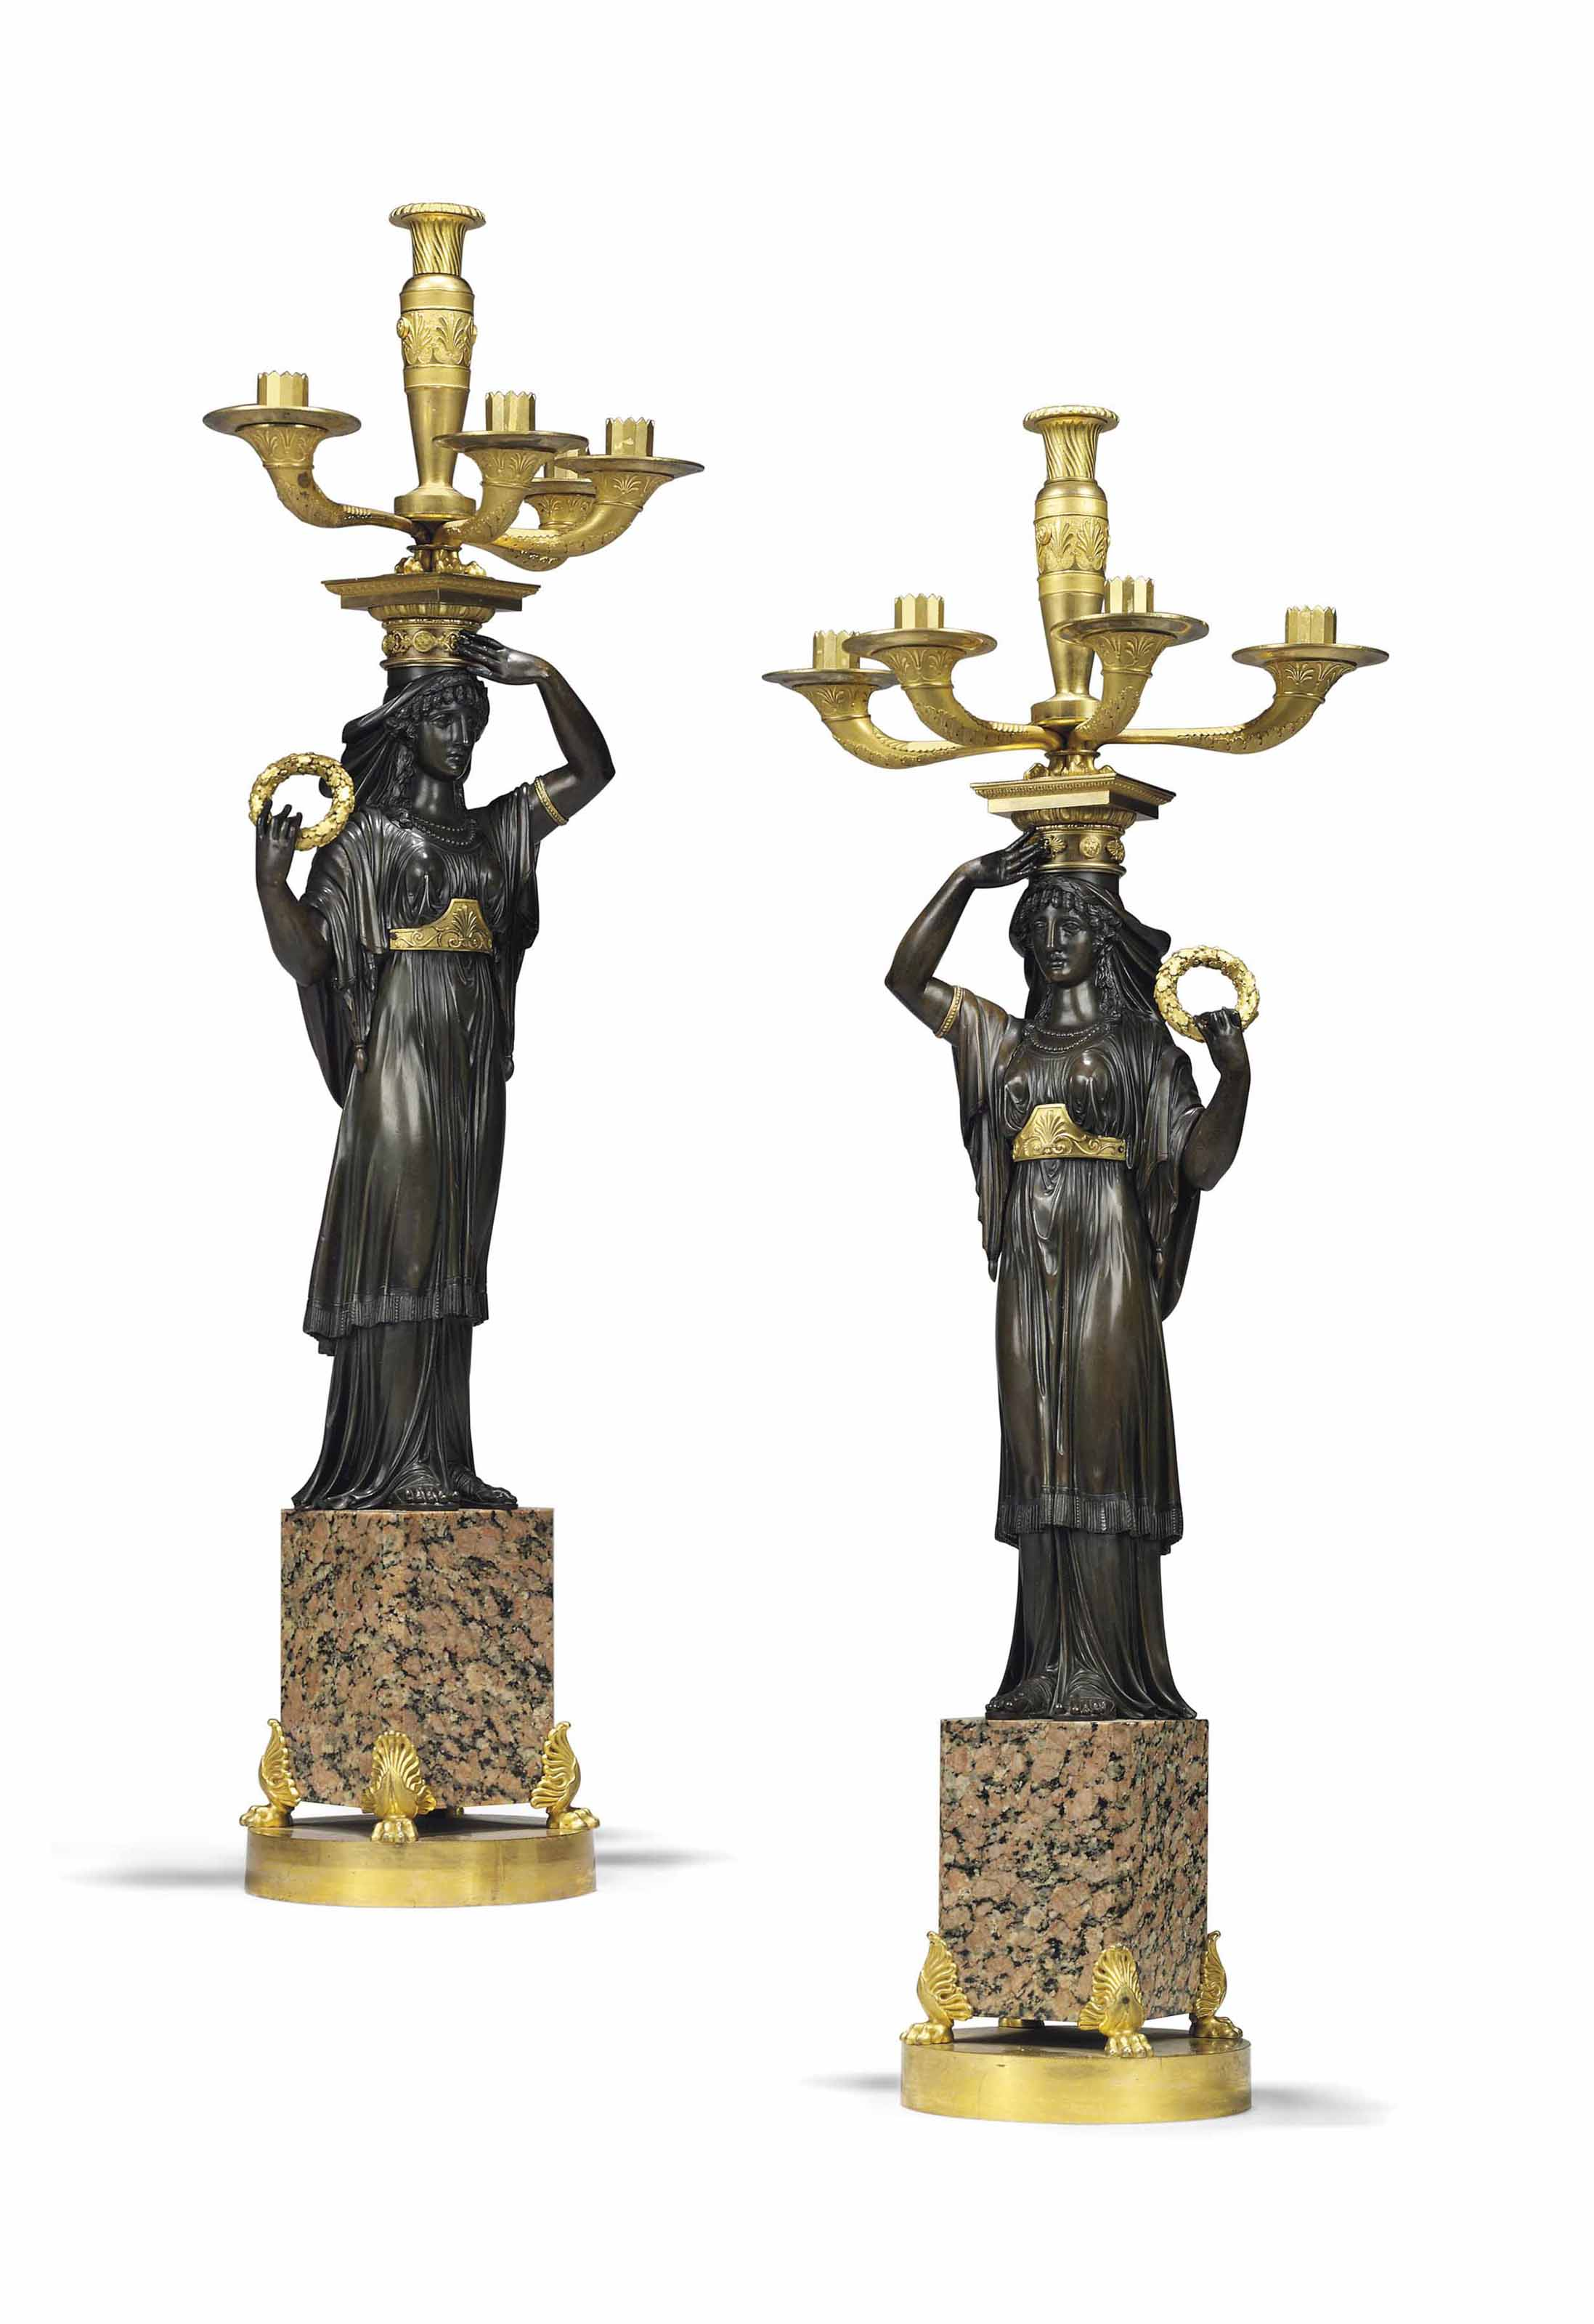 A PAIR OF EMPIRE ORMOLU, PATINATED-BRONZE AND PINK GRANITE FIVE-LIGHT CANDELABRA